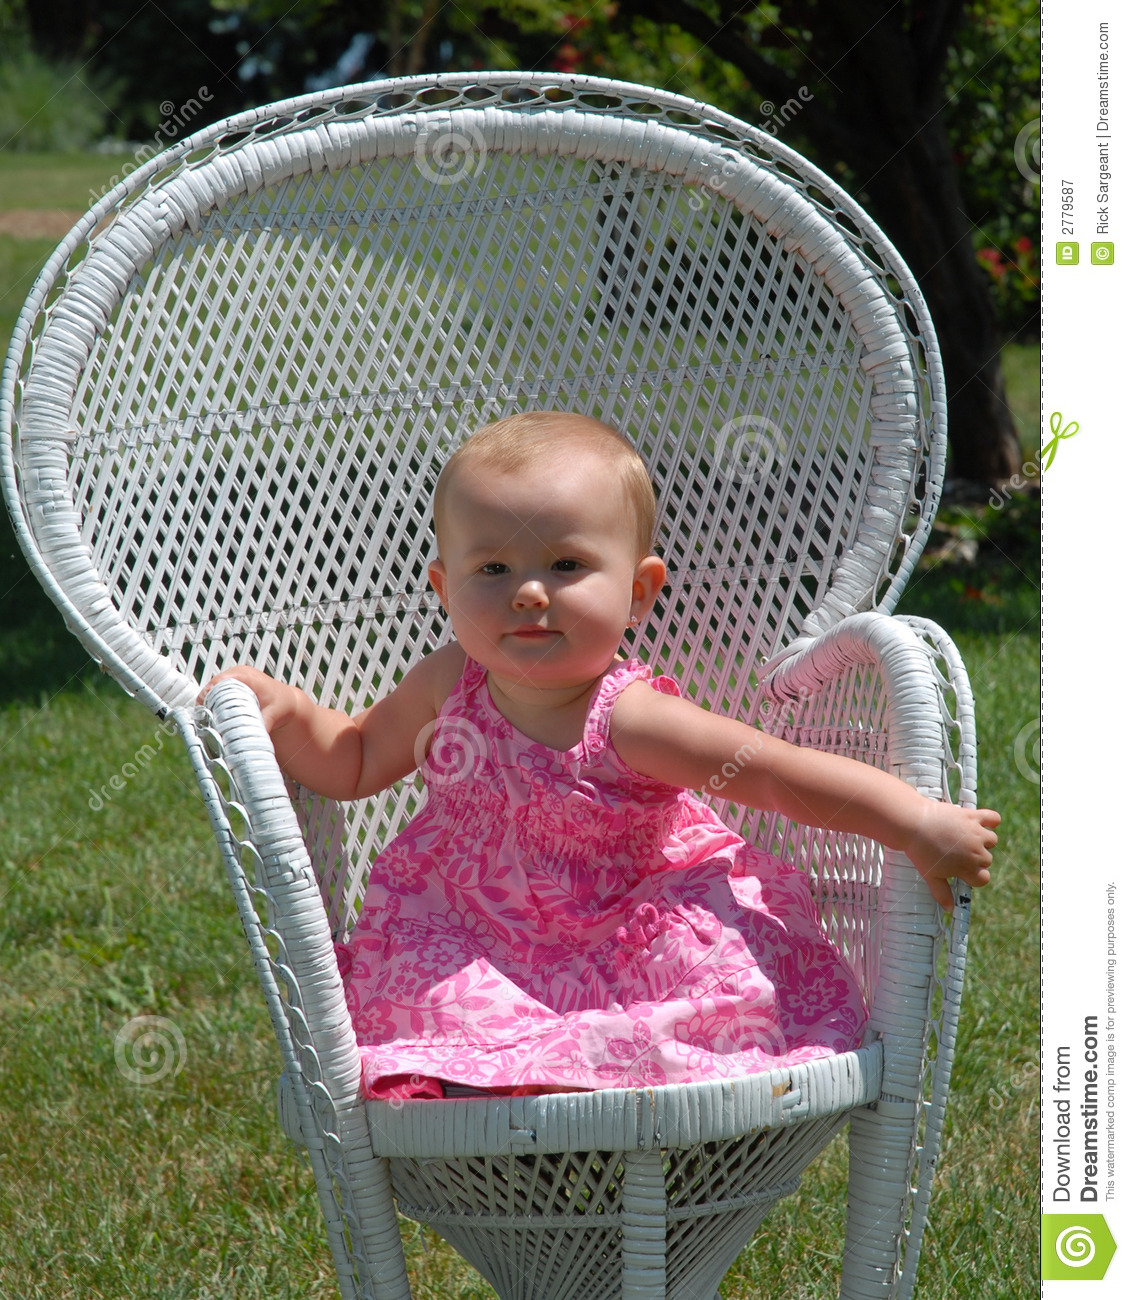 baby bamboo chair revolving cad block in white wicker stock photography